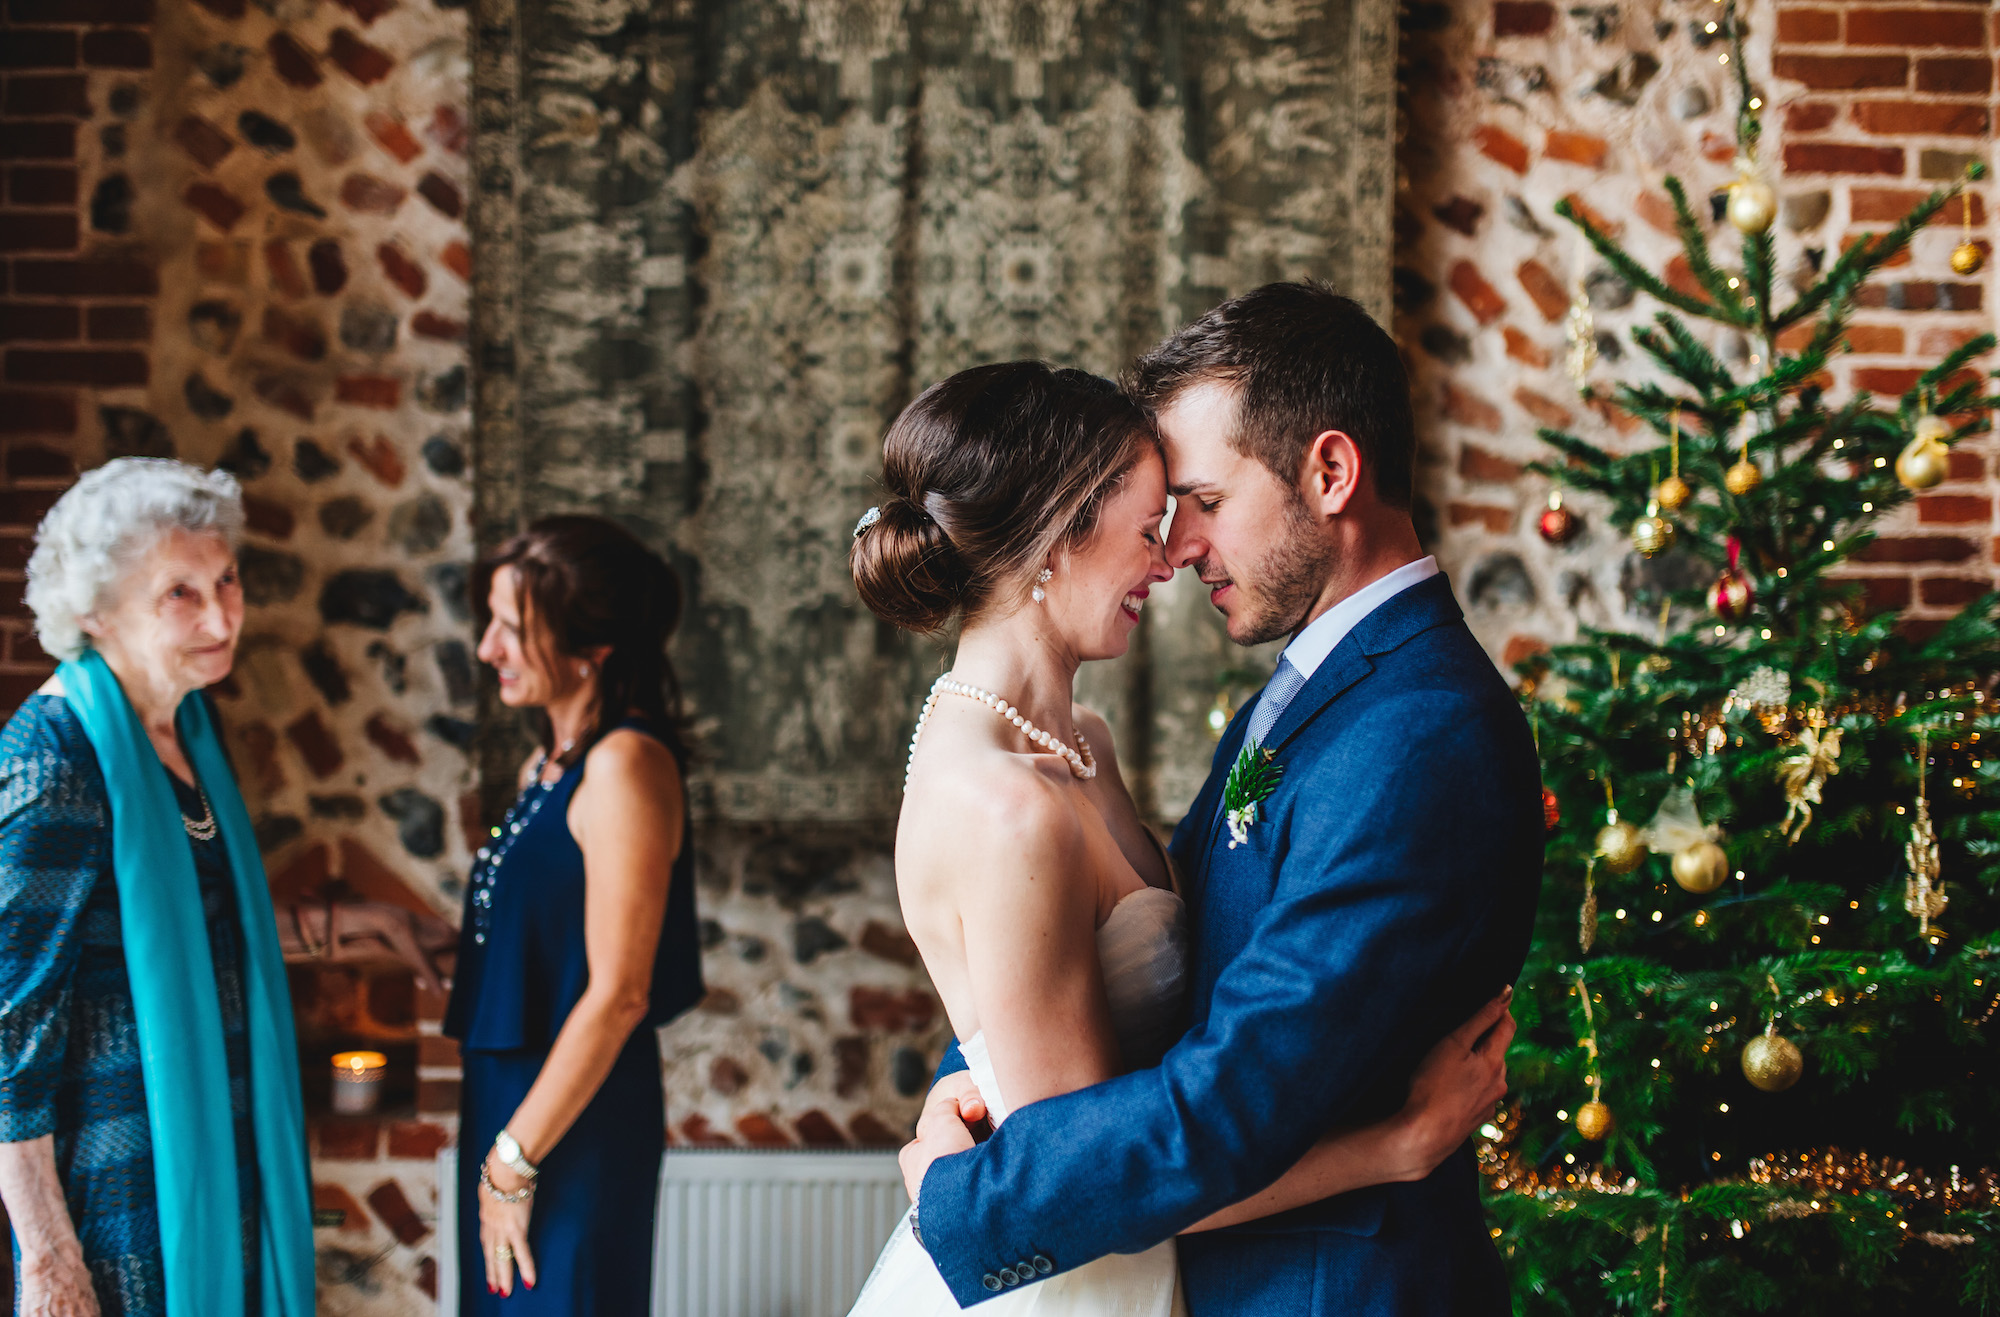 08 Chaucer Barn Norfolk Wedding Photographer Bride Groom Just Married Family Touching Moment.jpg